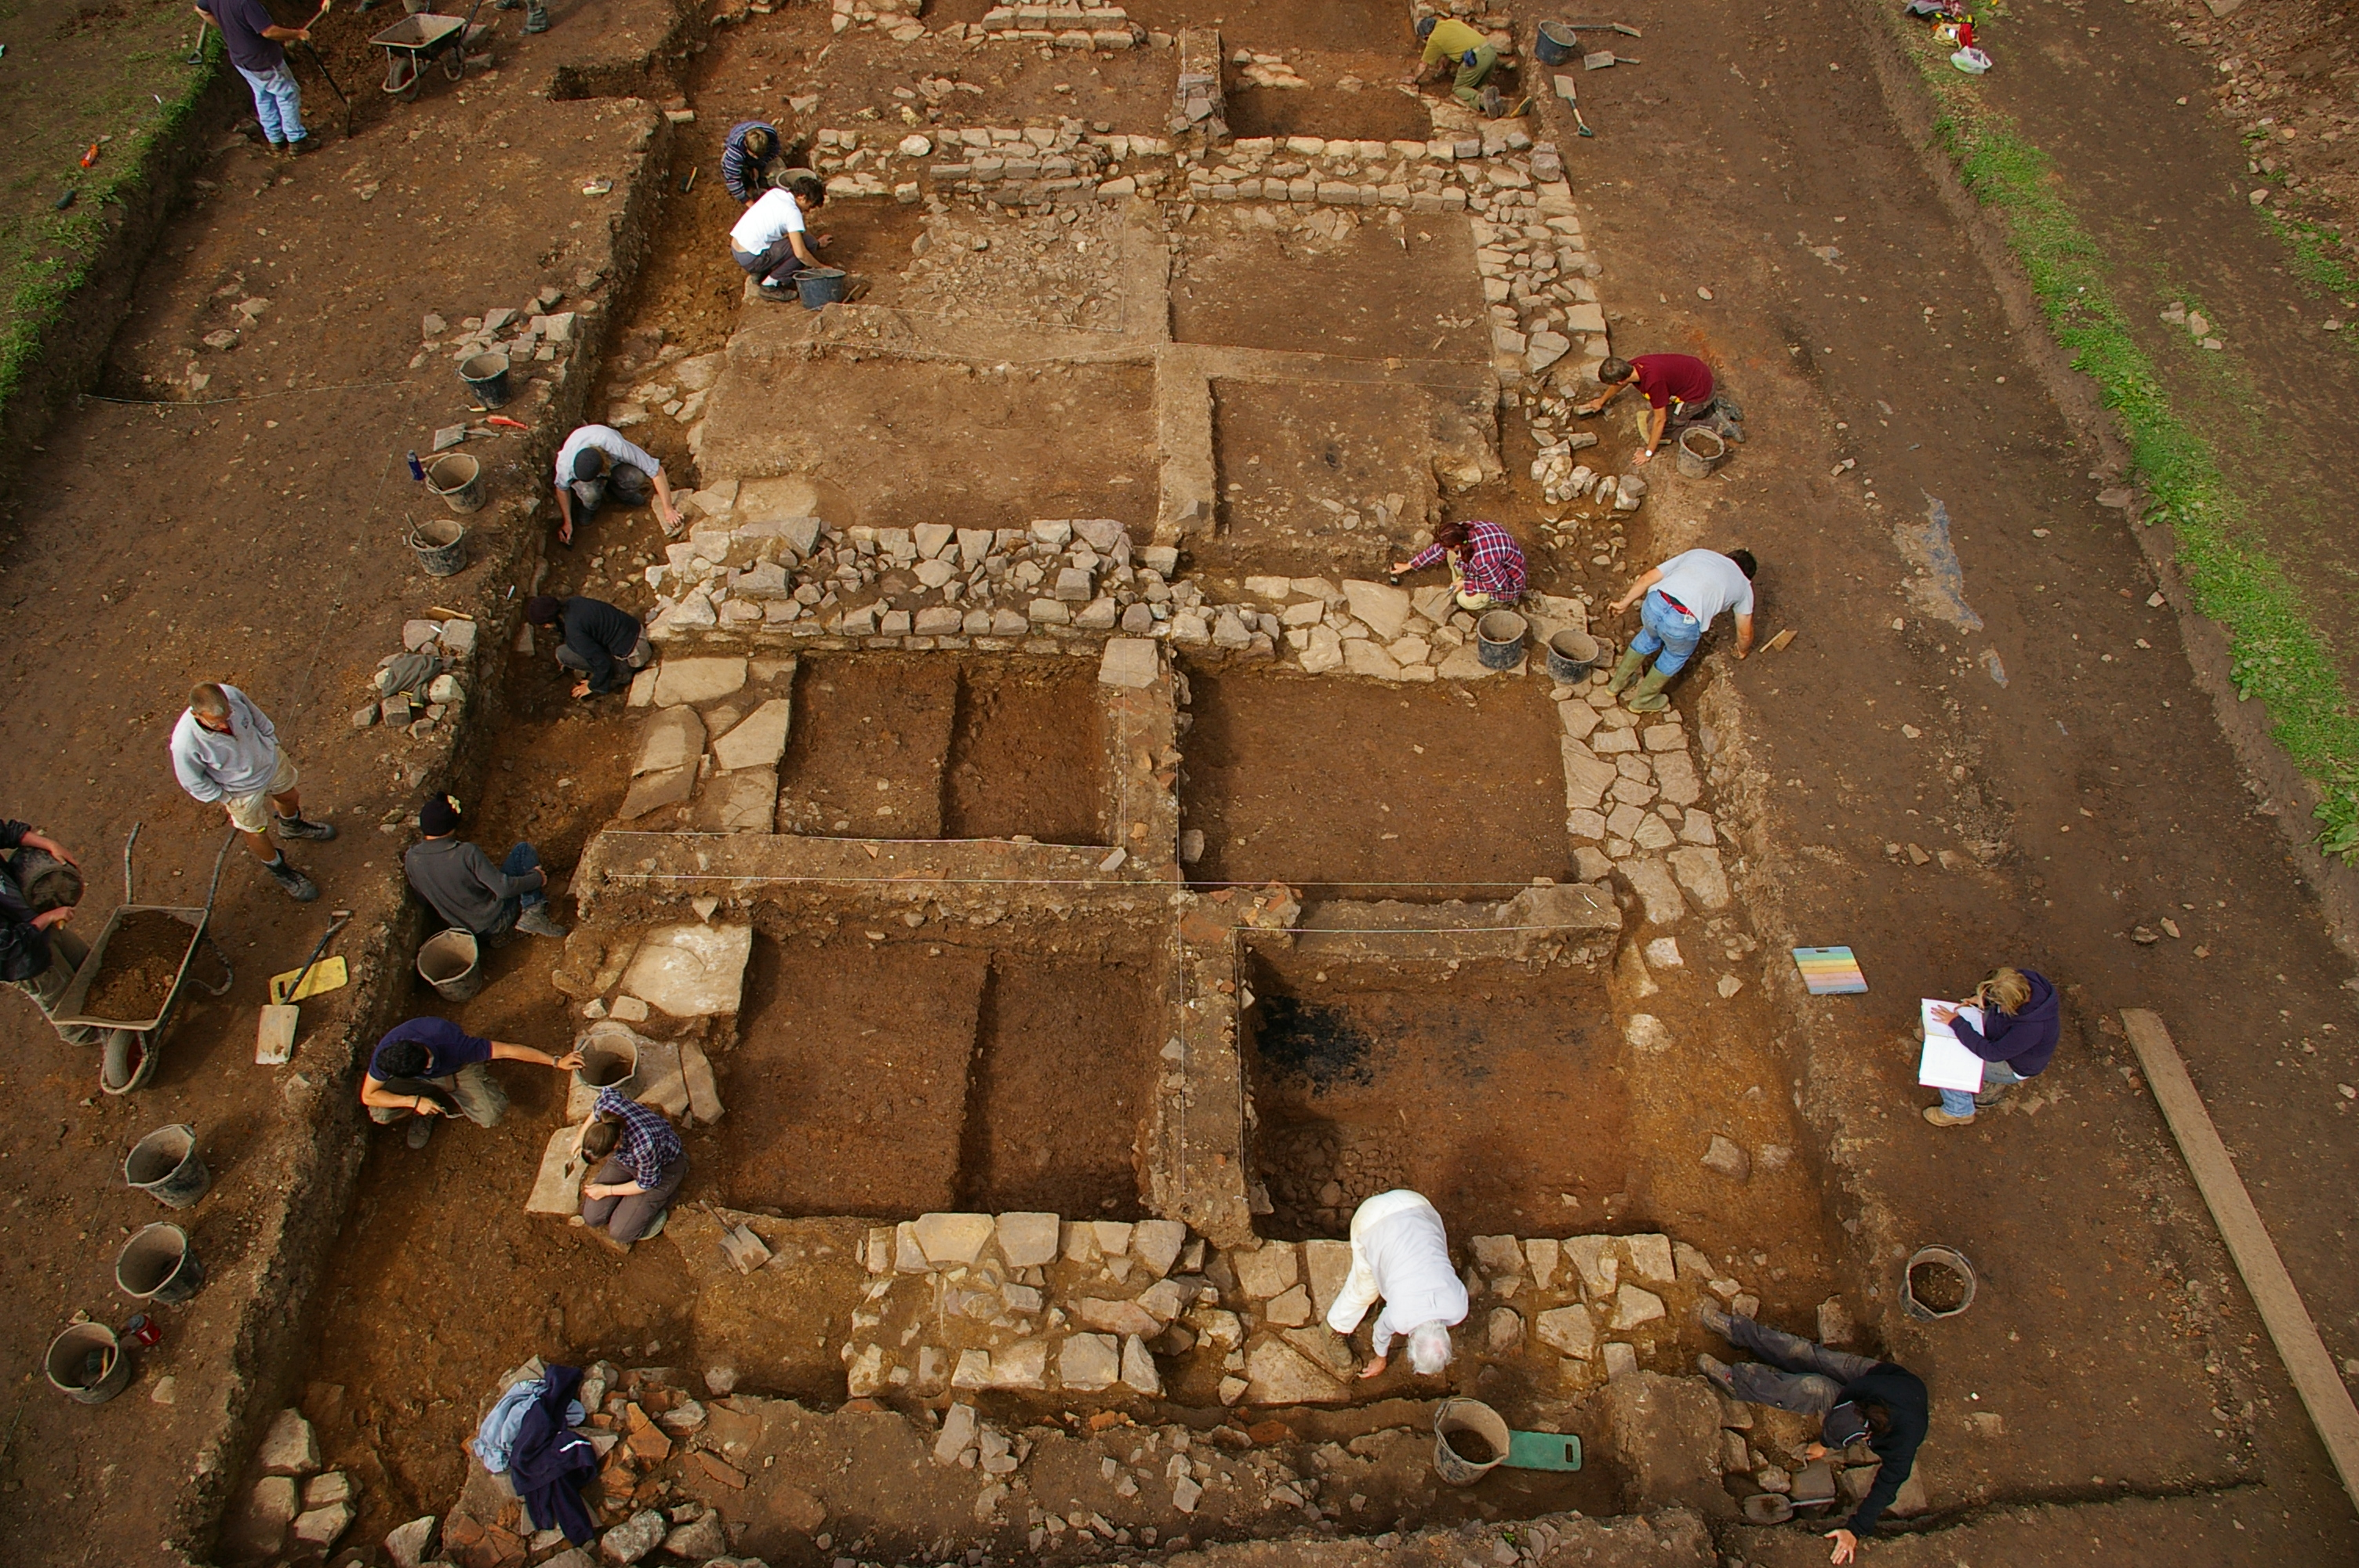 Figure 2: Excavating in Priory Field, 2010. © Cardiff University / UCL